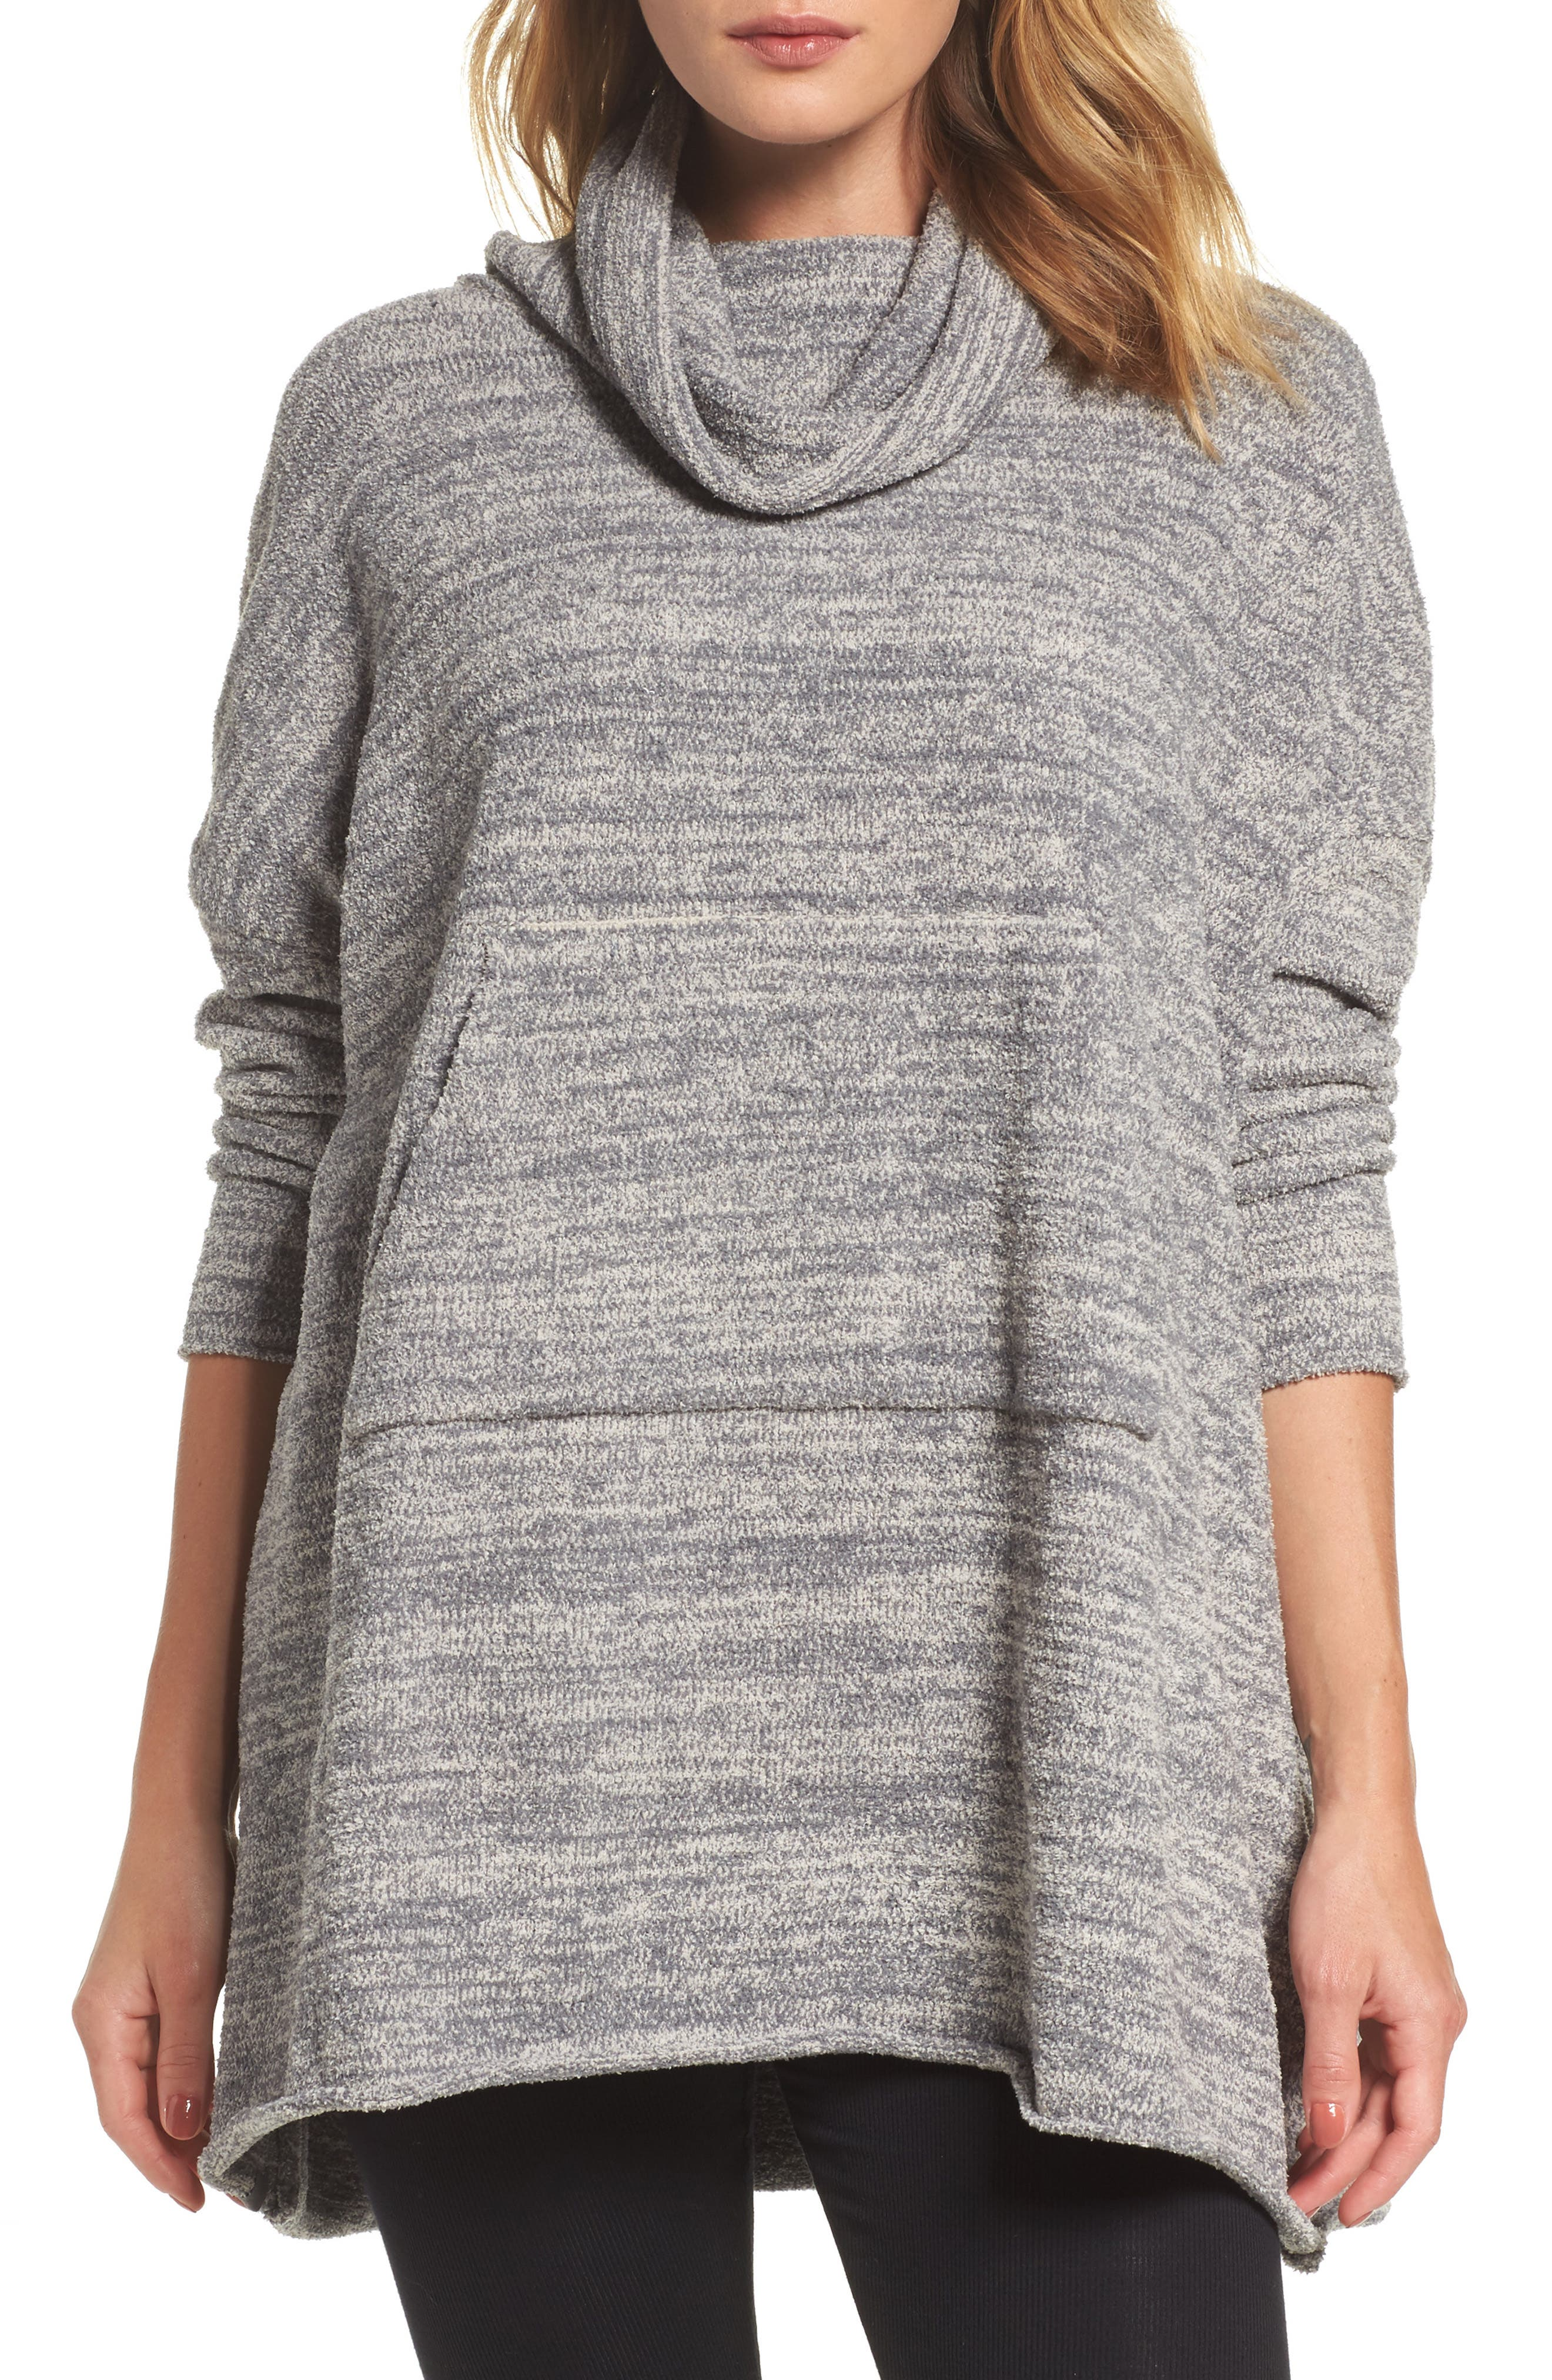 Cozychic<sup>®</sup> Lounge Pullover,                         Main,                         color, GRAPHITE/ STONE HEATHERED